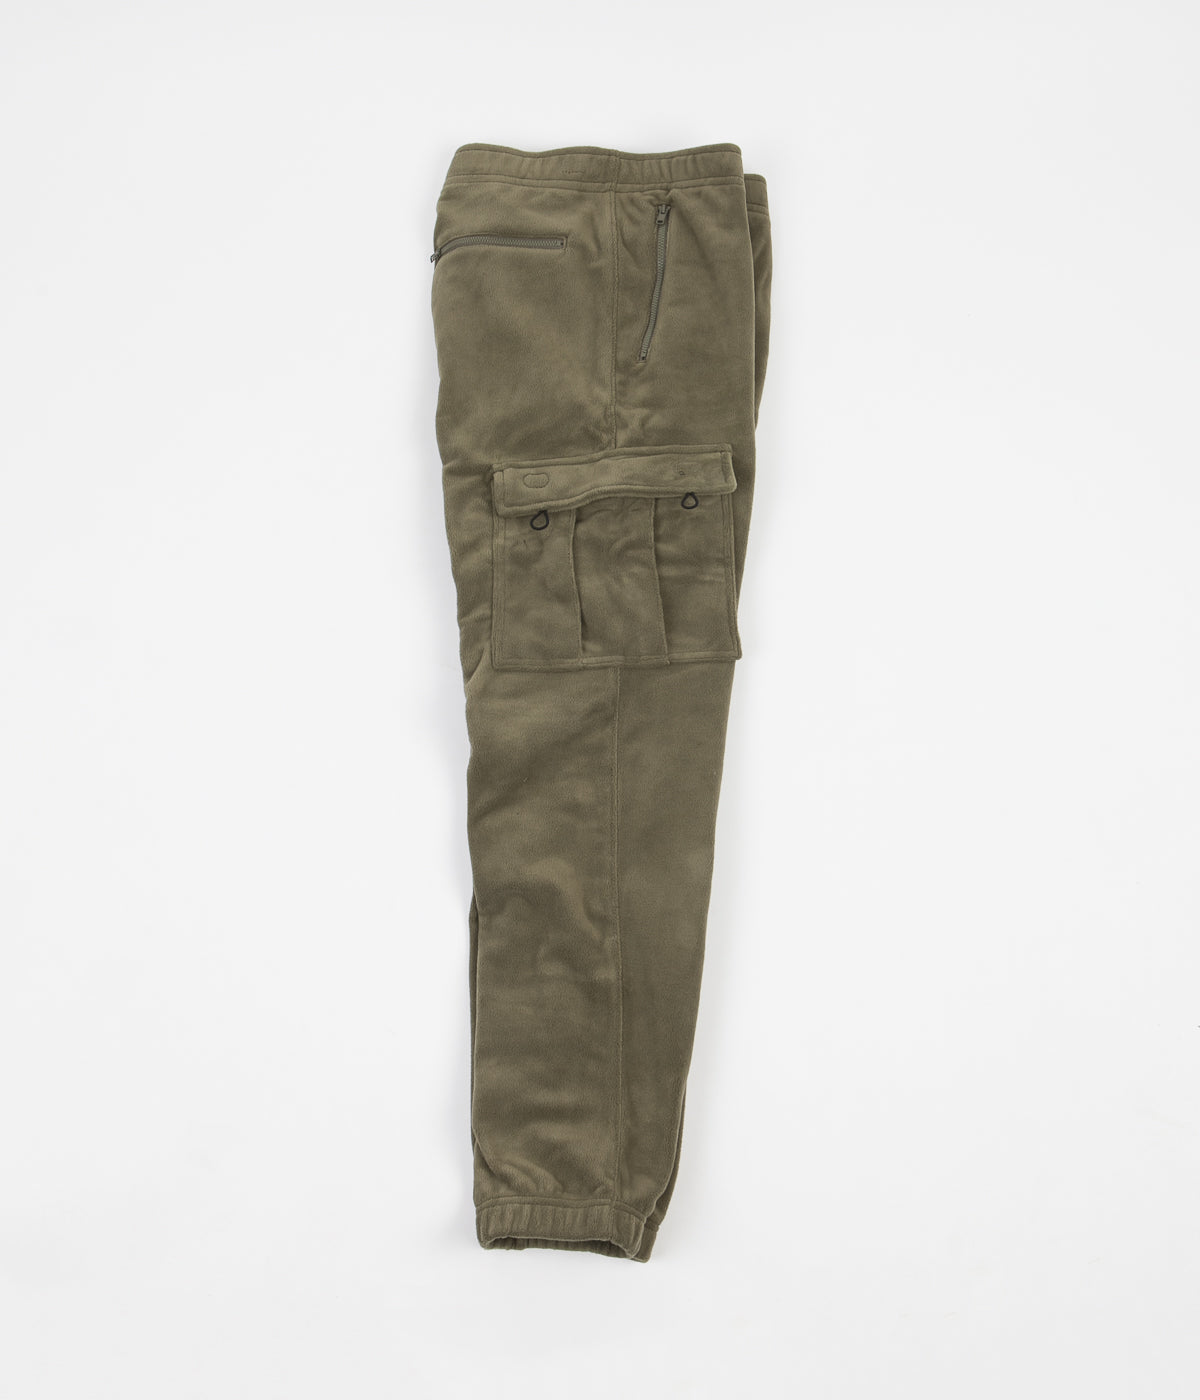 George Stevenson católico Búsqueda  Nike SB Fleece Cargo Pants - Medium Olive / Electro Orange / Black |  Flatspot